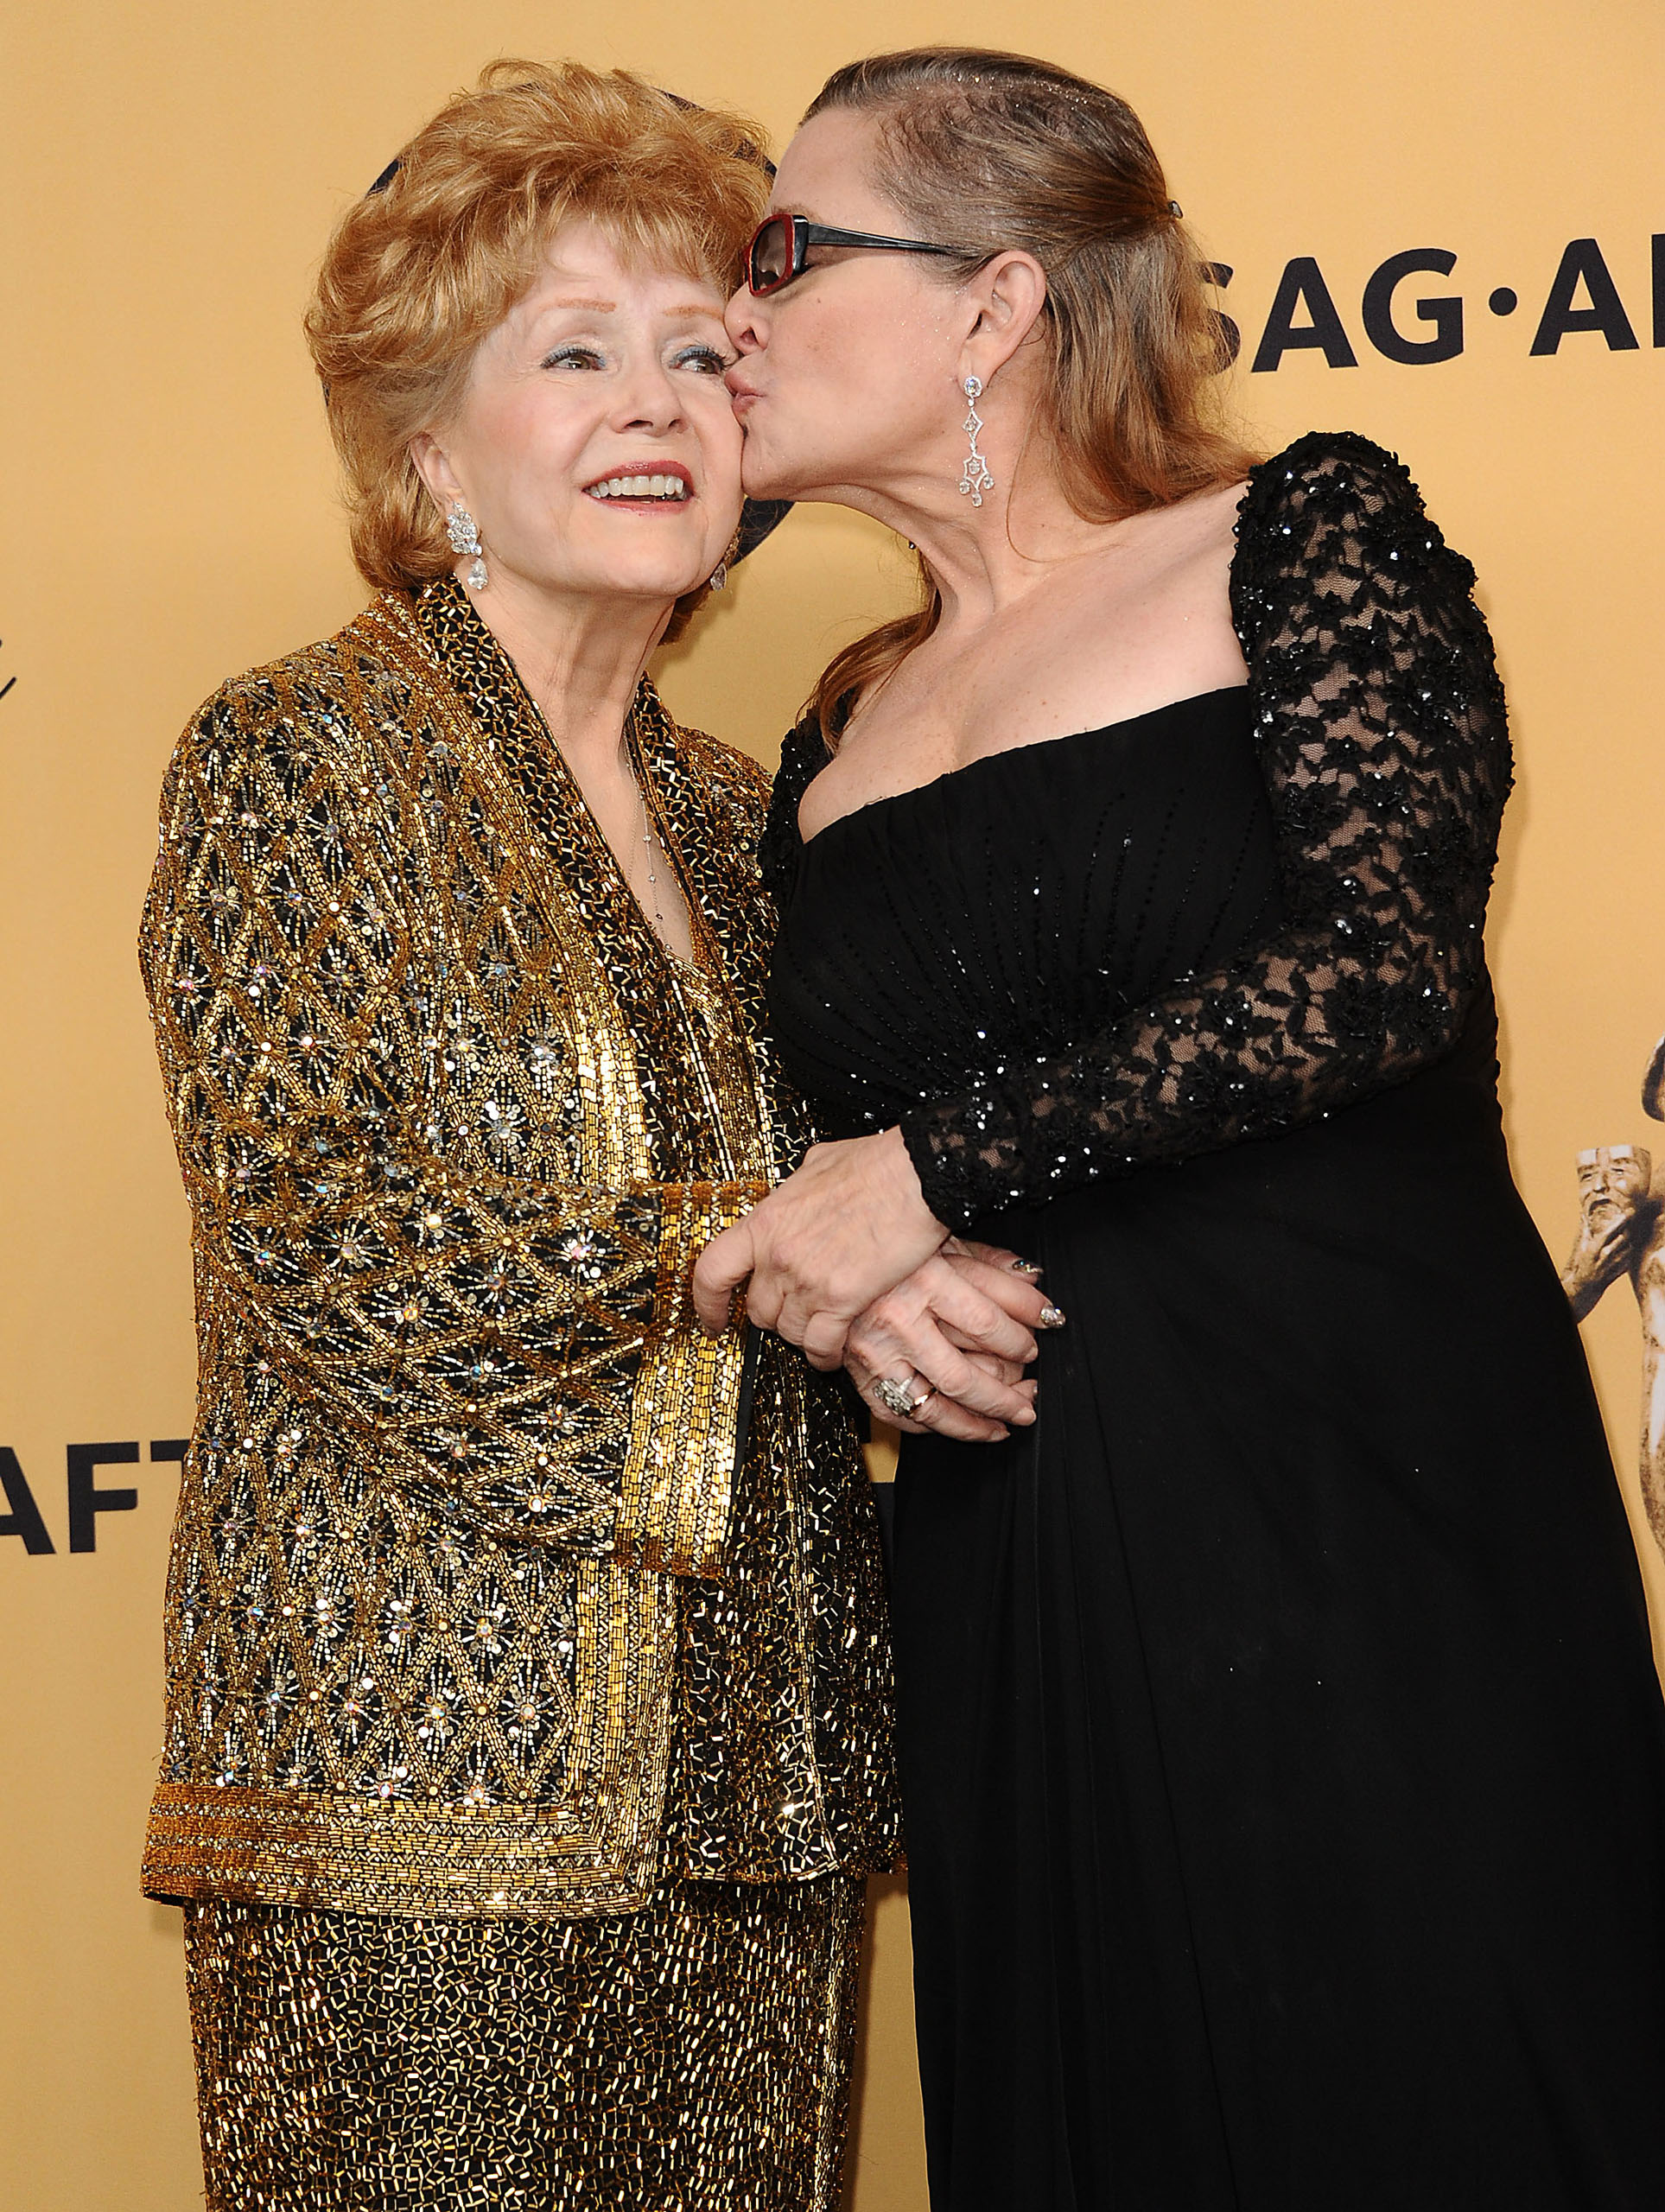 Actresses Debbie Reynolds and  her daughter Carrie Fisher pose in the press room at the 21st annual Screen Actors Guild Awards at The Shrine Auditorium on January 25, 2015 in Los Angeles, California.